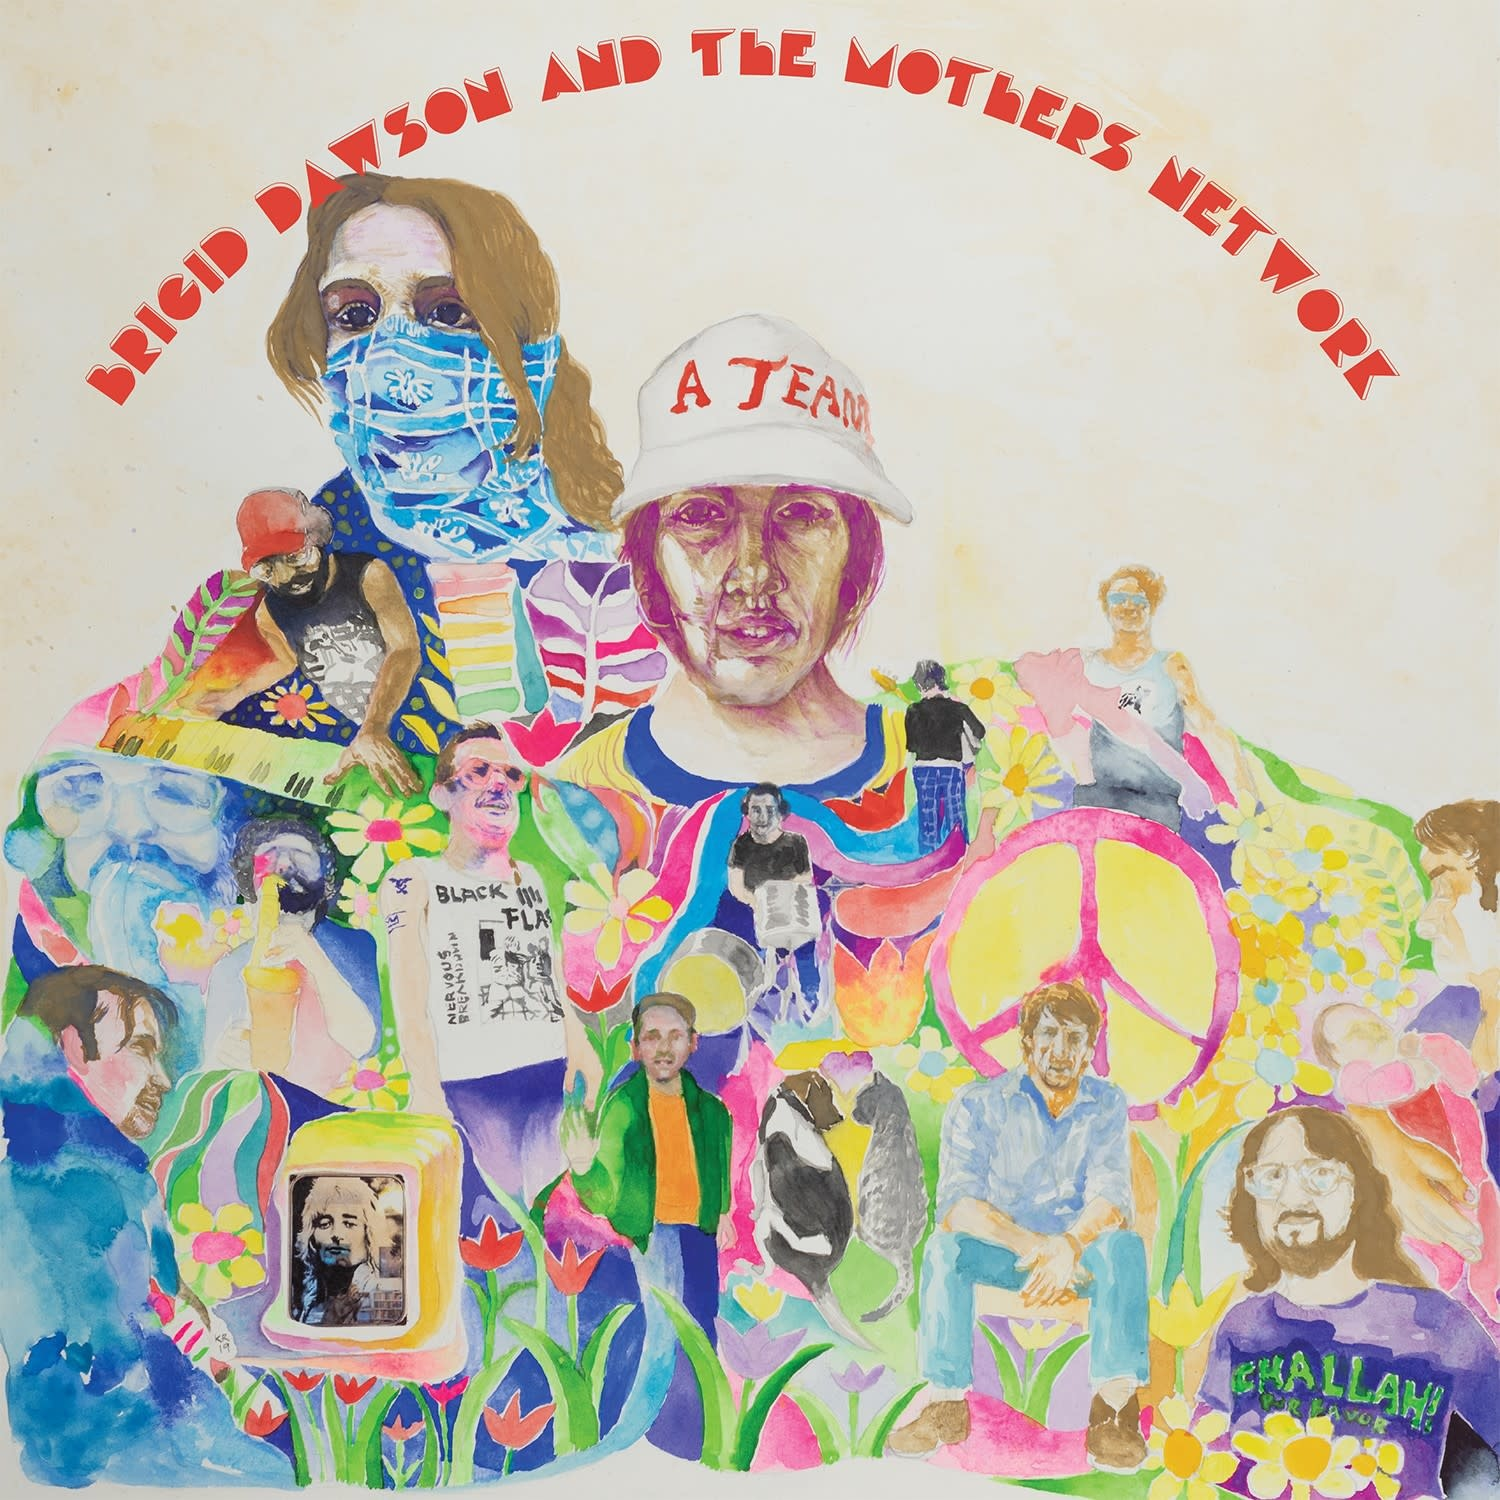 Castle Face Records Brigid Dawson & The Mothers Network - Ballet Of Apes